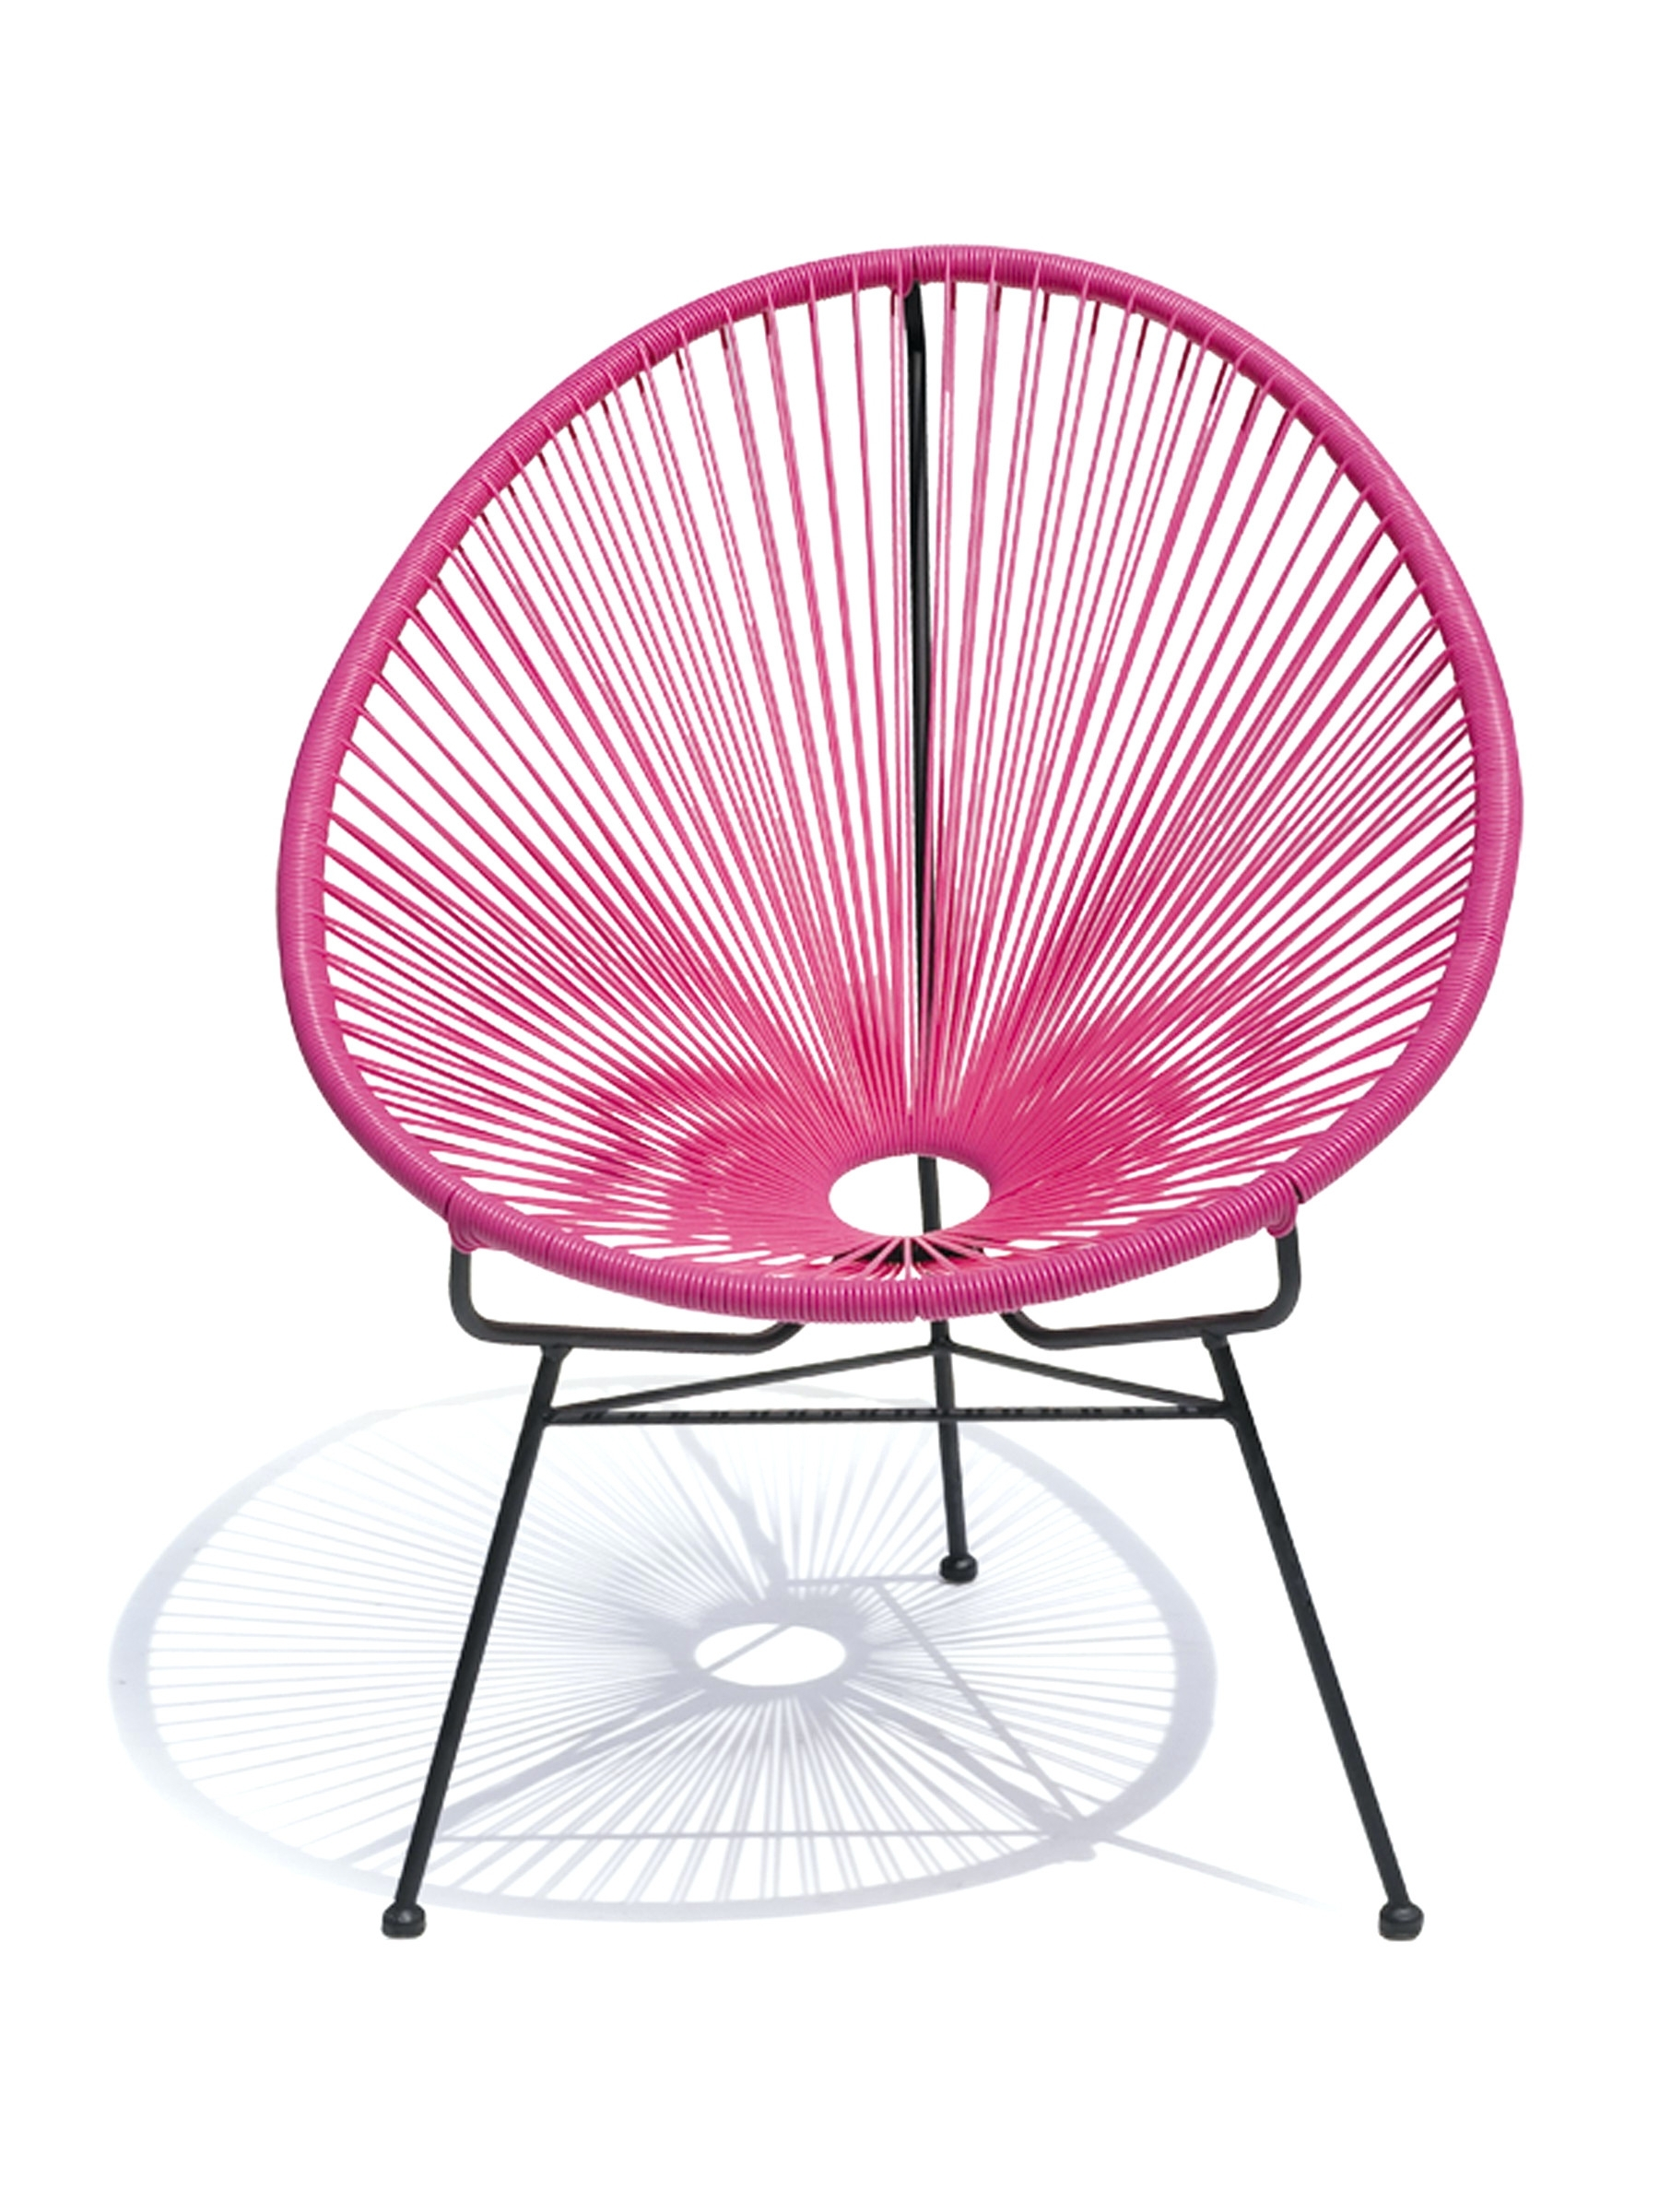 Recent Pink Beach Lounge Chair • Lounge Chairs Ideas Throughout Hot Pink Chaise Lounge Chairs (View 11 of 15)